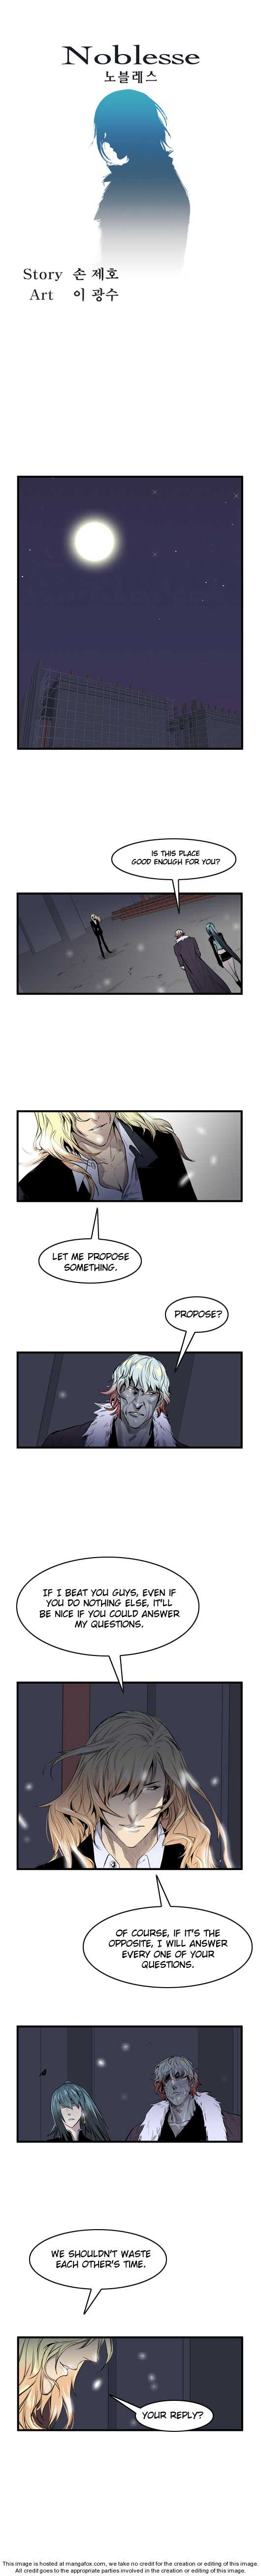 Noblesse 45 Page 1